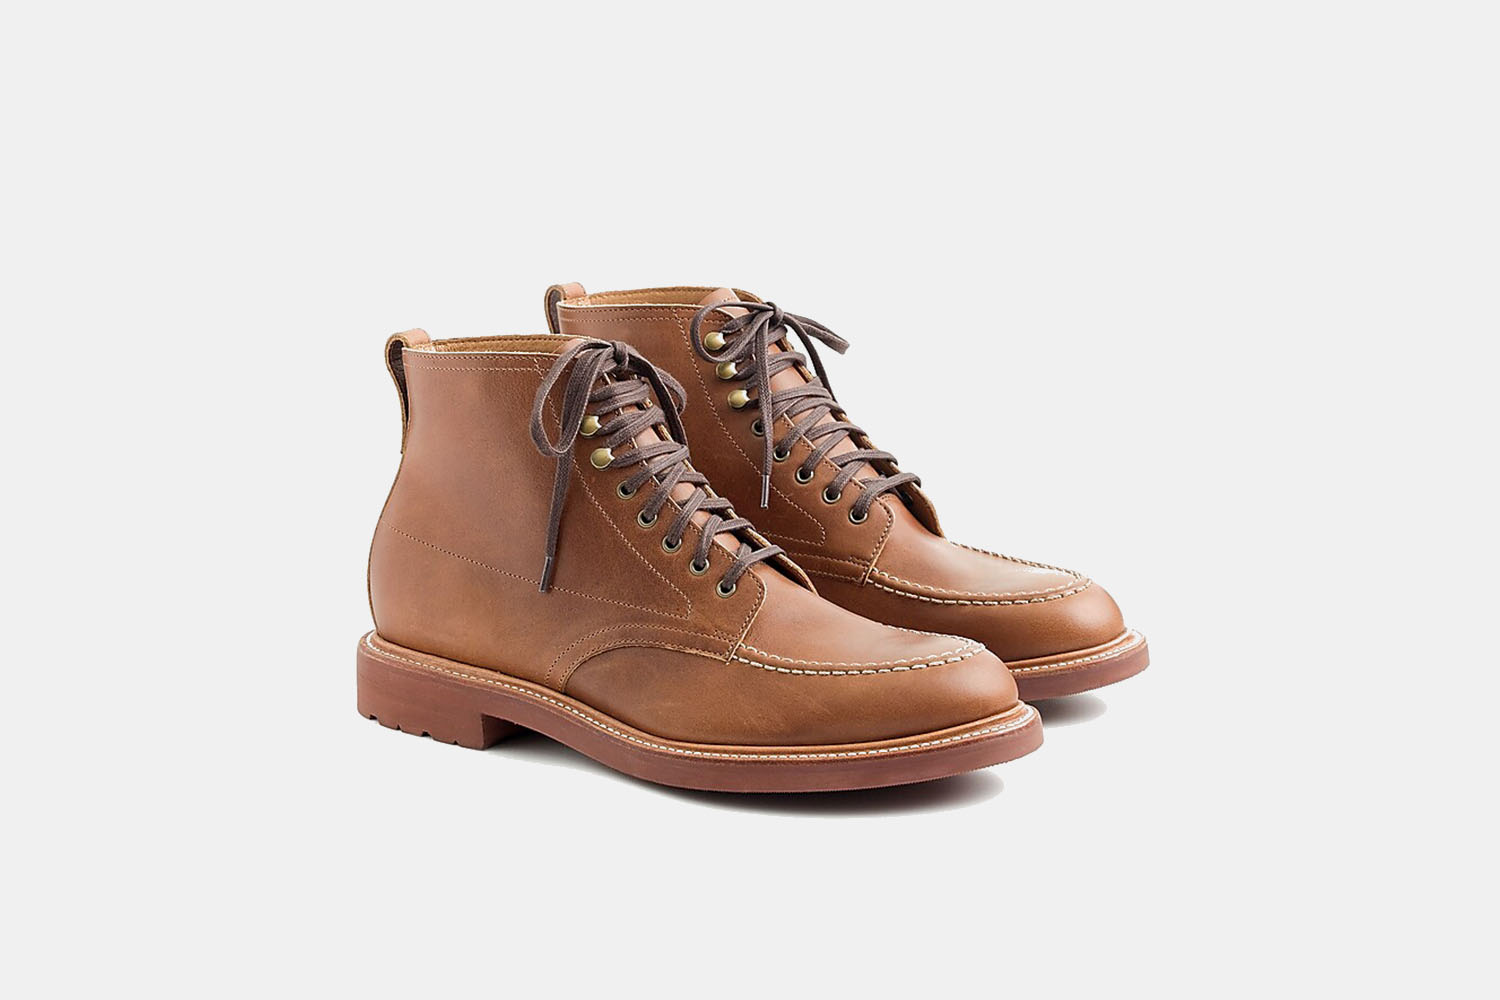 Deal: Get These J.Crew Kenton Boots for Just Over $100